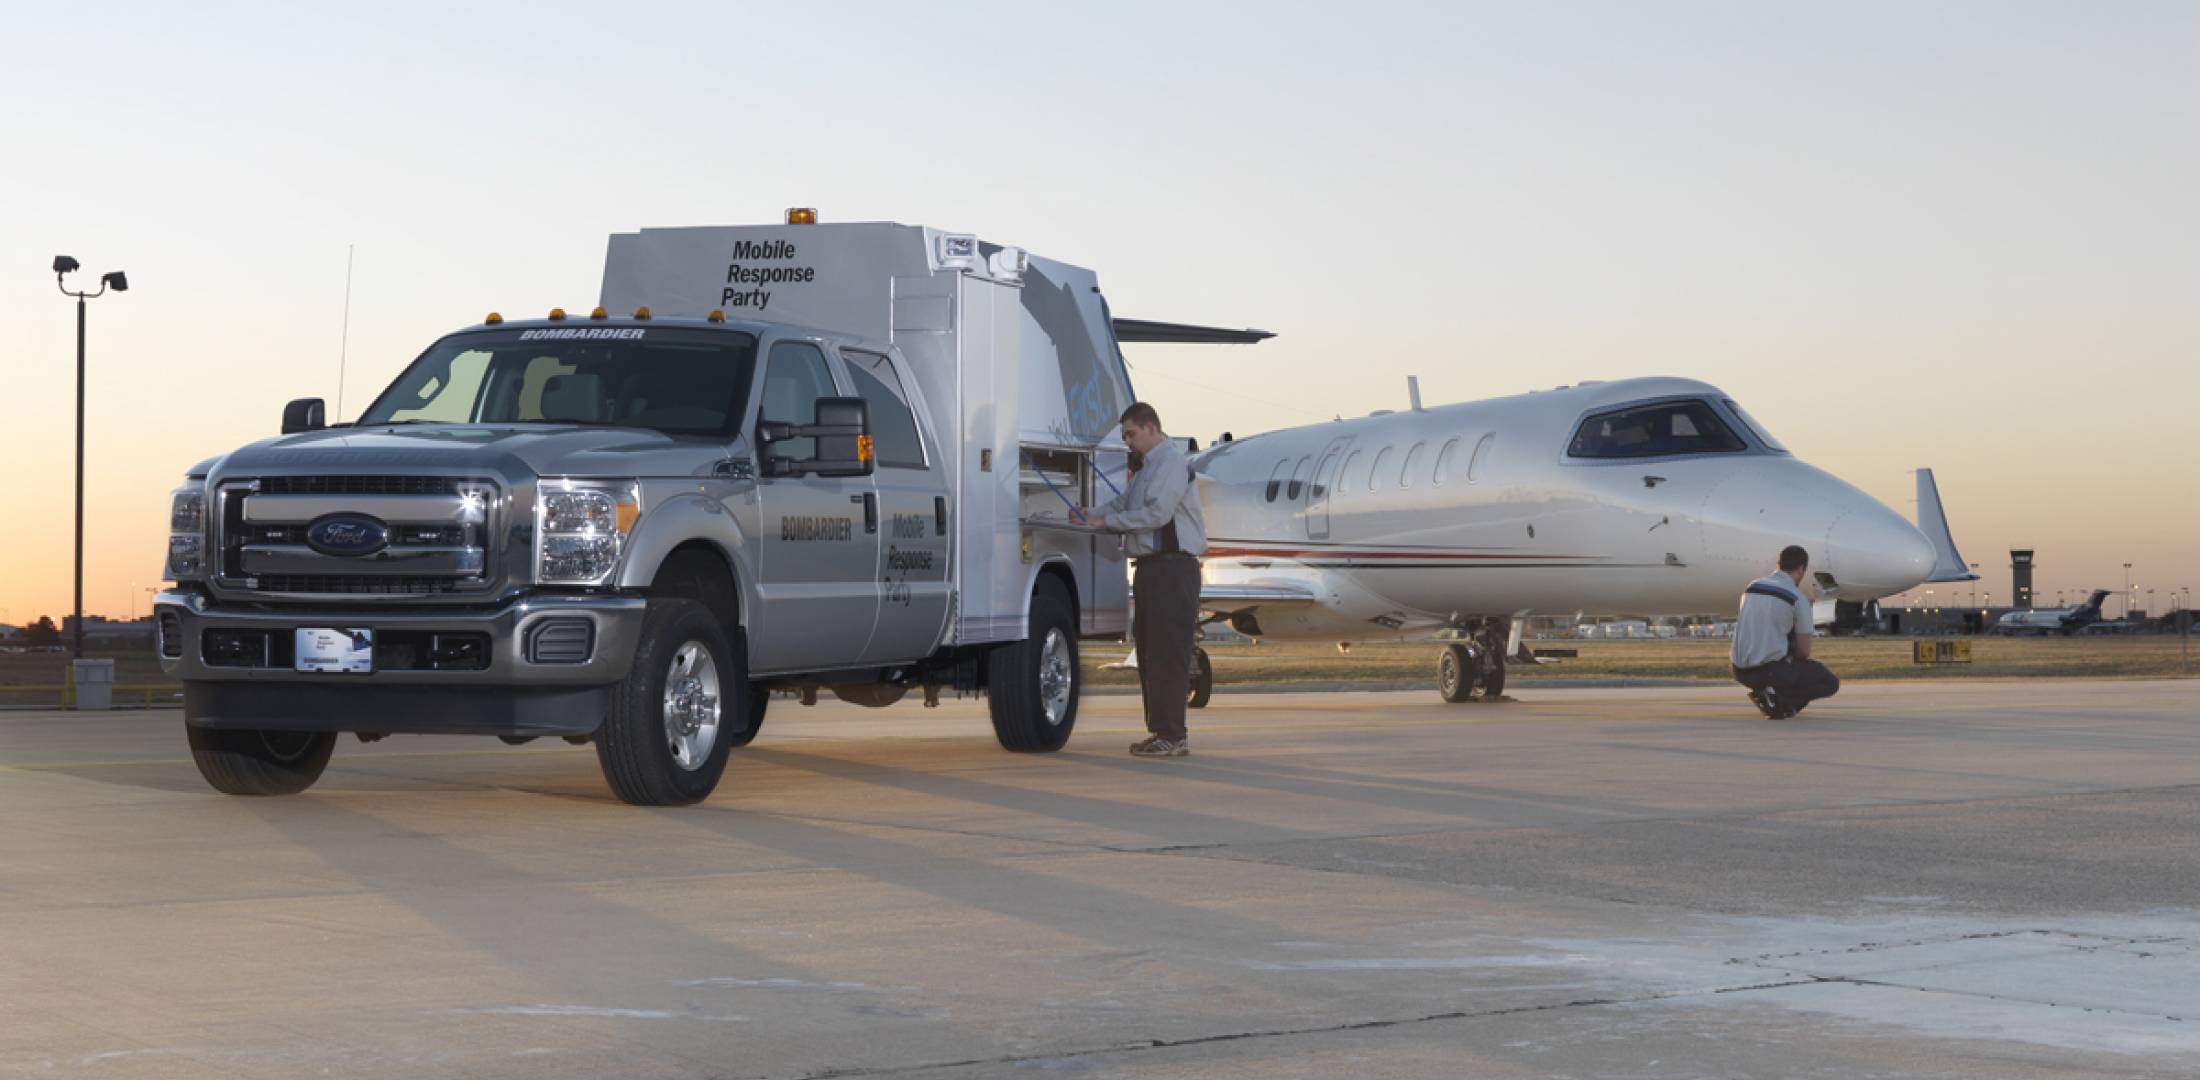 Bombardier will deploy mobile response parties to seven regions over the next two months.